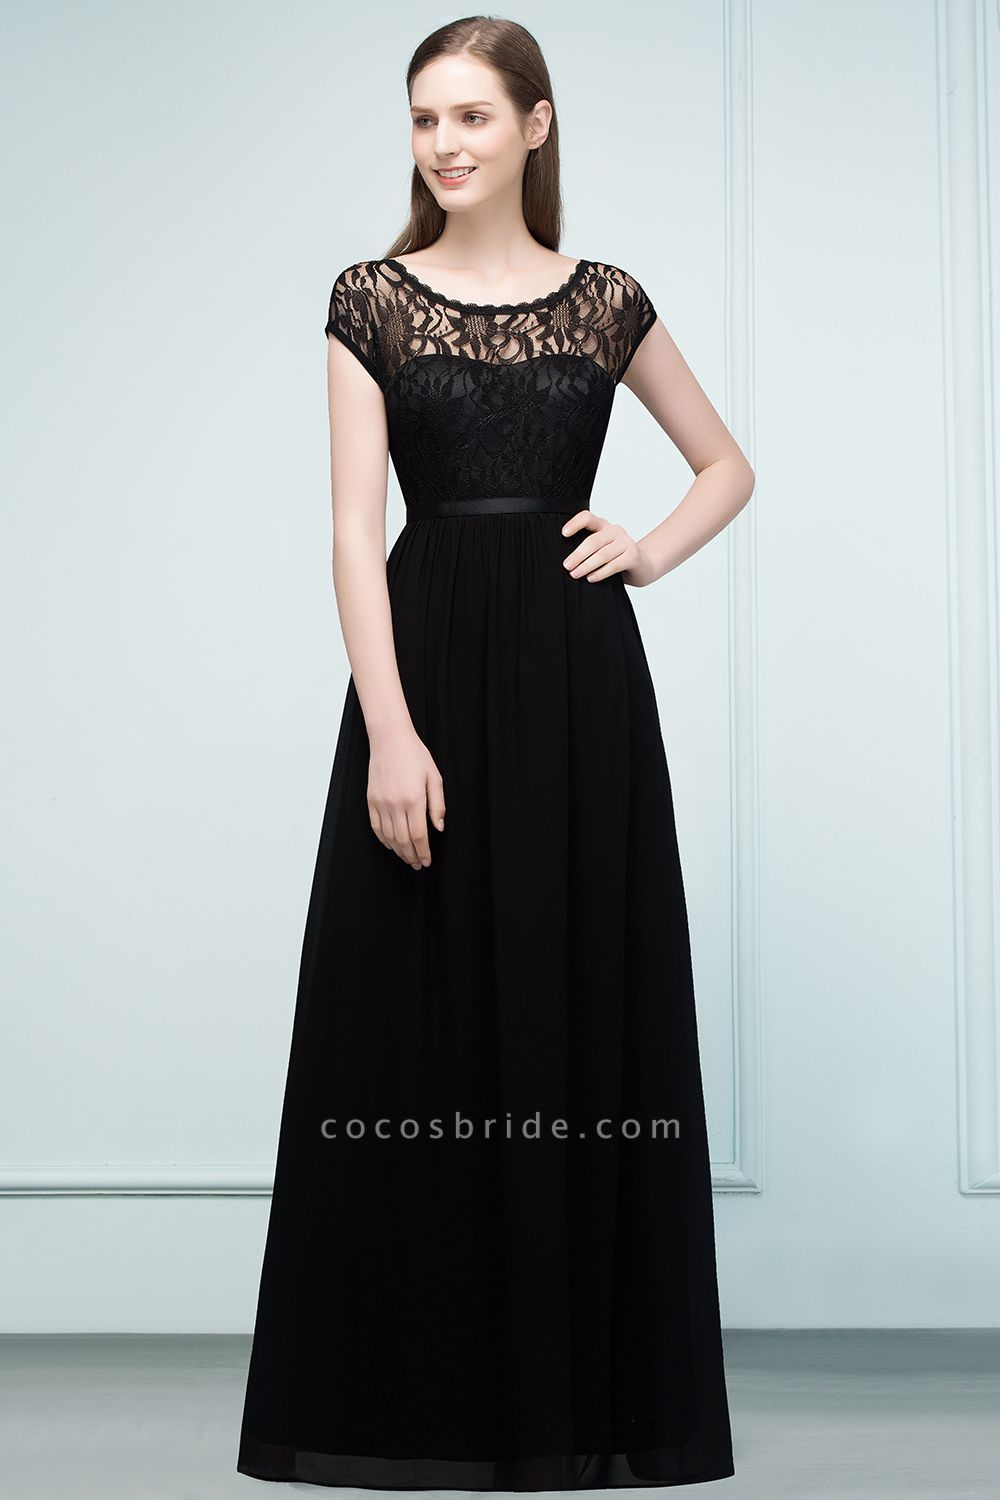 A-Line Chiffon Lace Jewel Short-Sleeves Floor-Length Bridesmaid Dresses with Sash